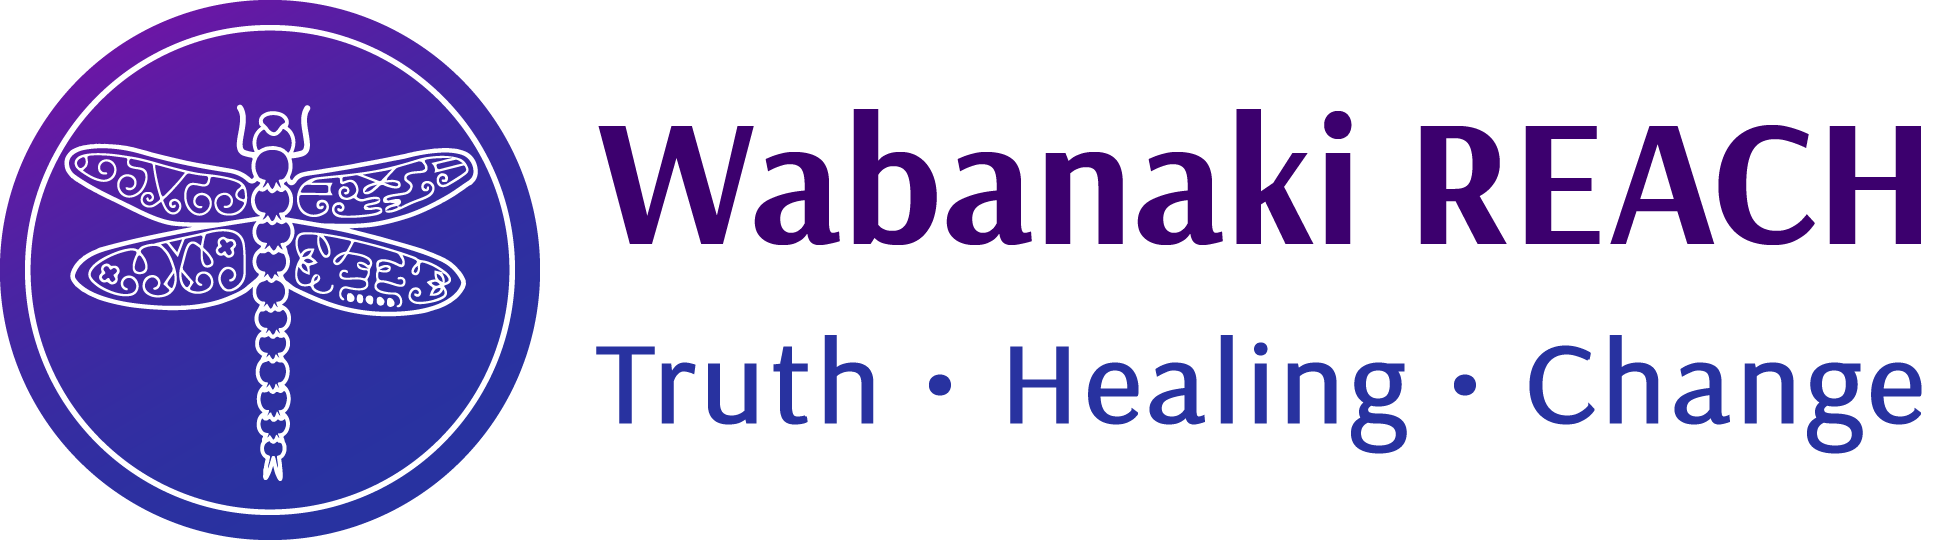 "White dragonfly in the middle of a purple and blue circle next to the words ""Wabanaki REACH"" and ""Truth, Healing, Change."""